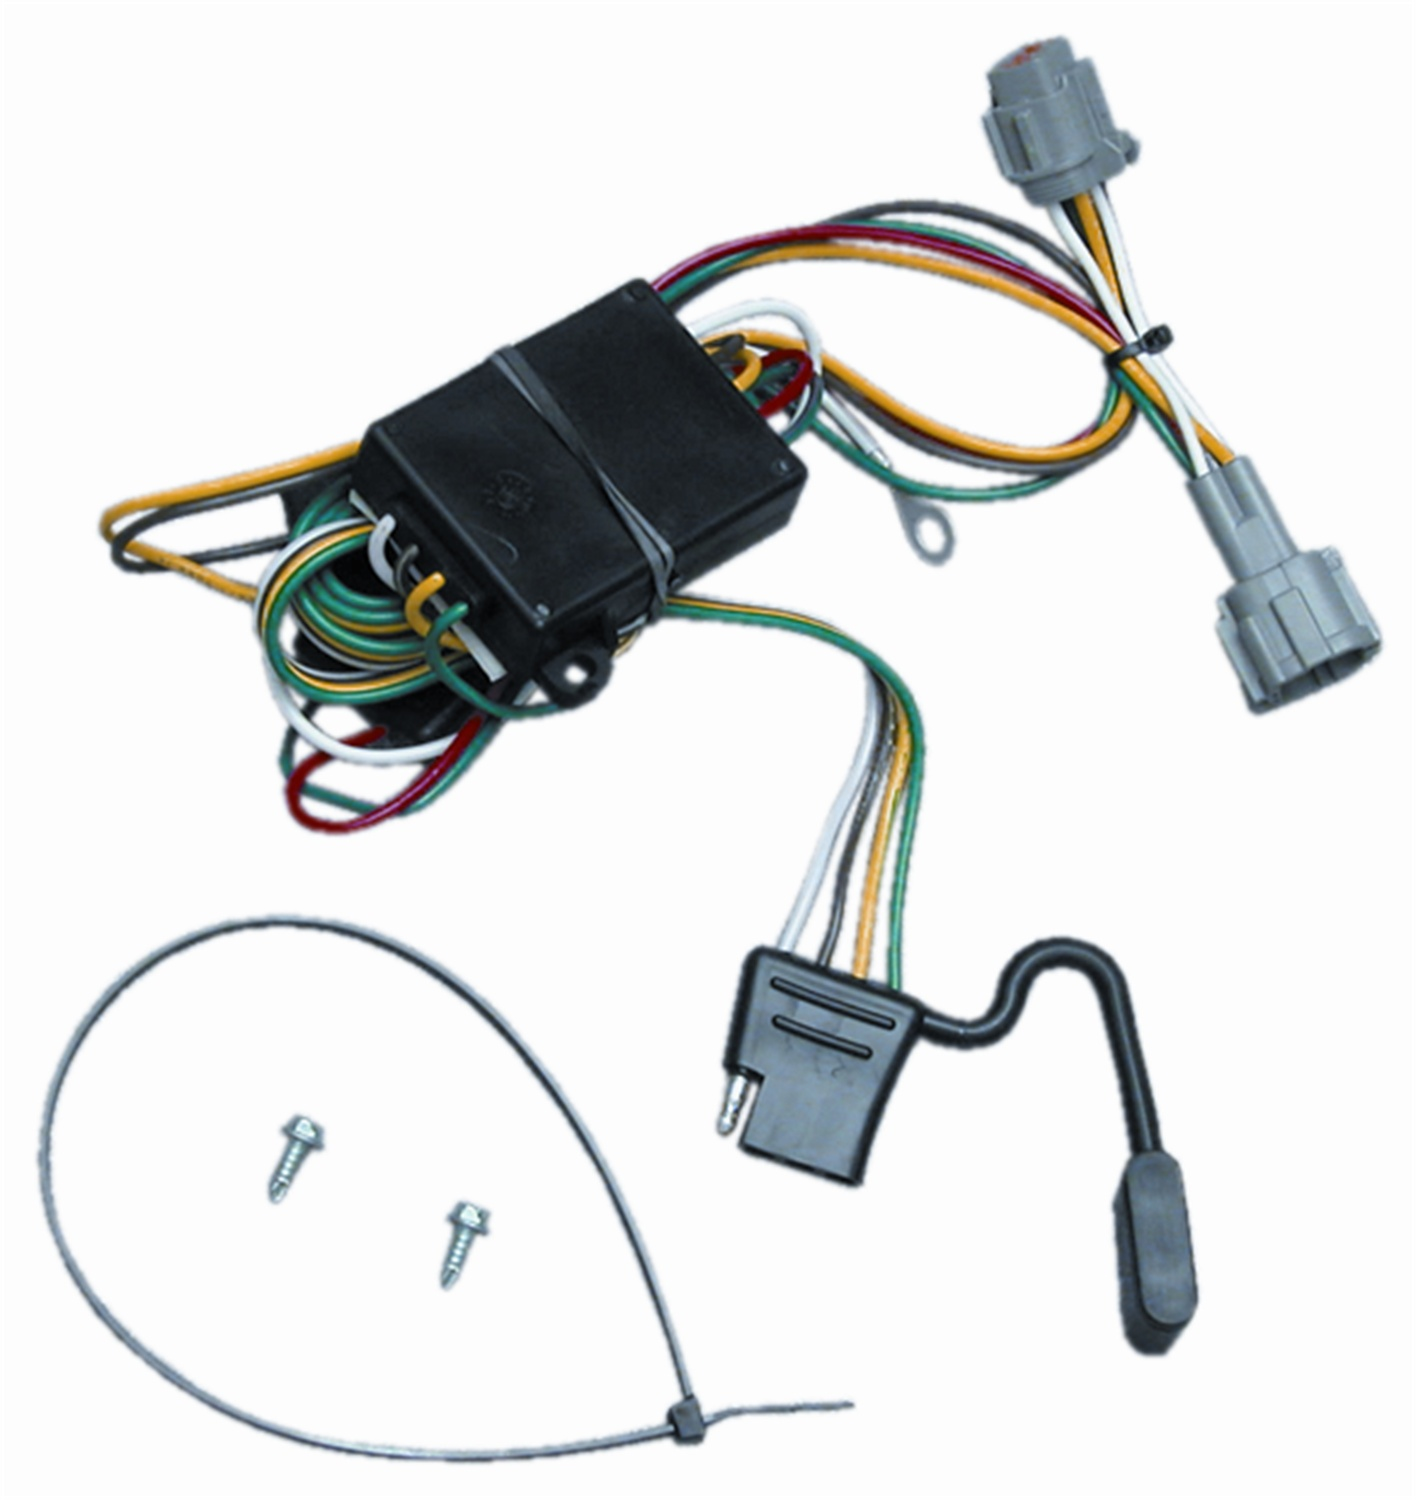 medium resolution of trailer wiring for 98 quest mini van 98 04 nissan frontier 98 nissan frontier trailer wiring harness 98 nissan frontier trailer wiring